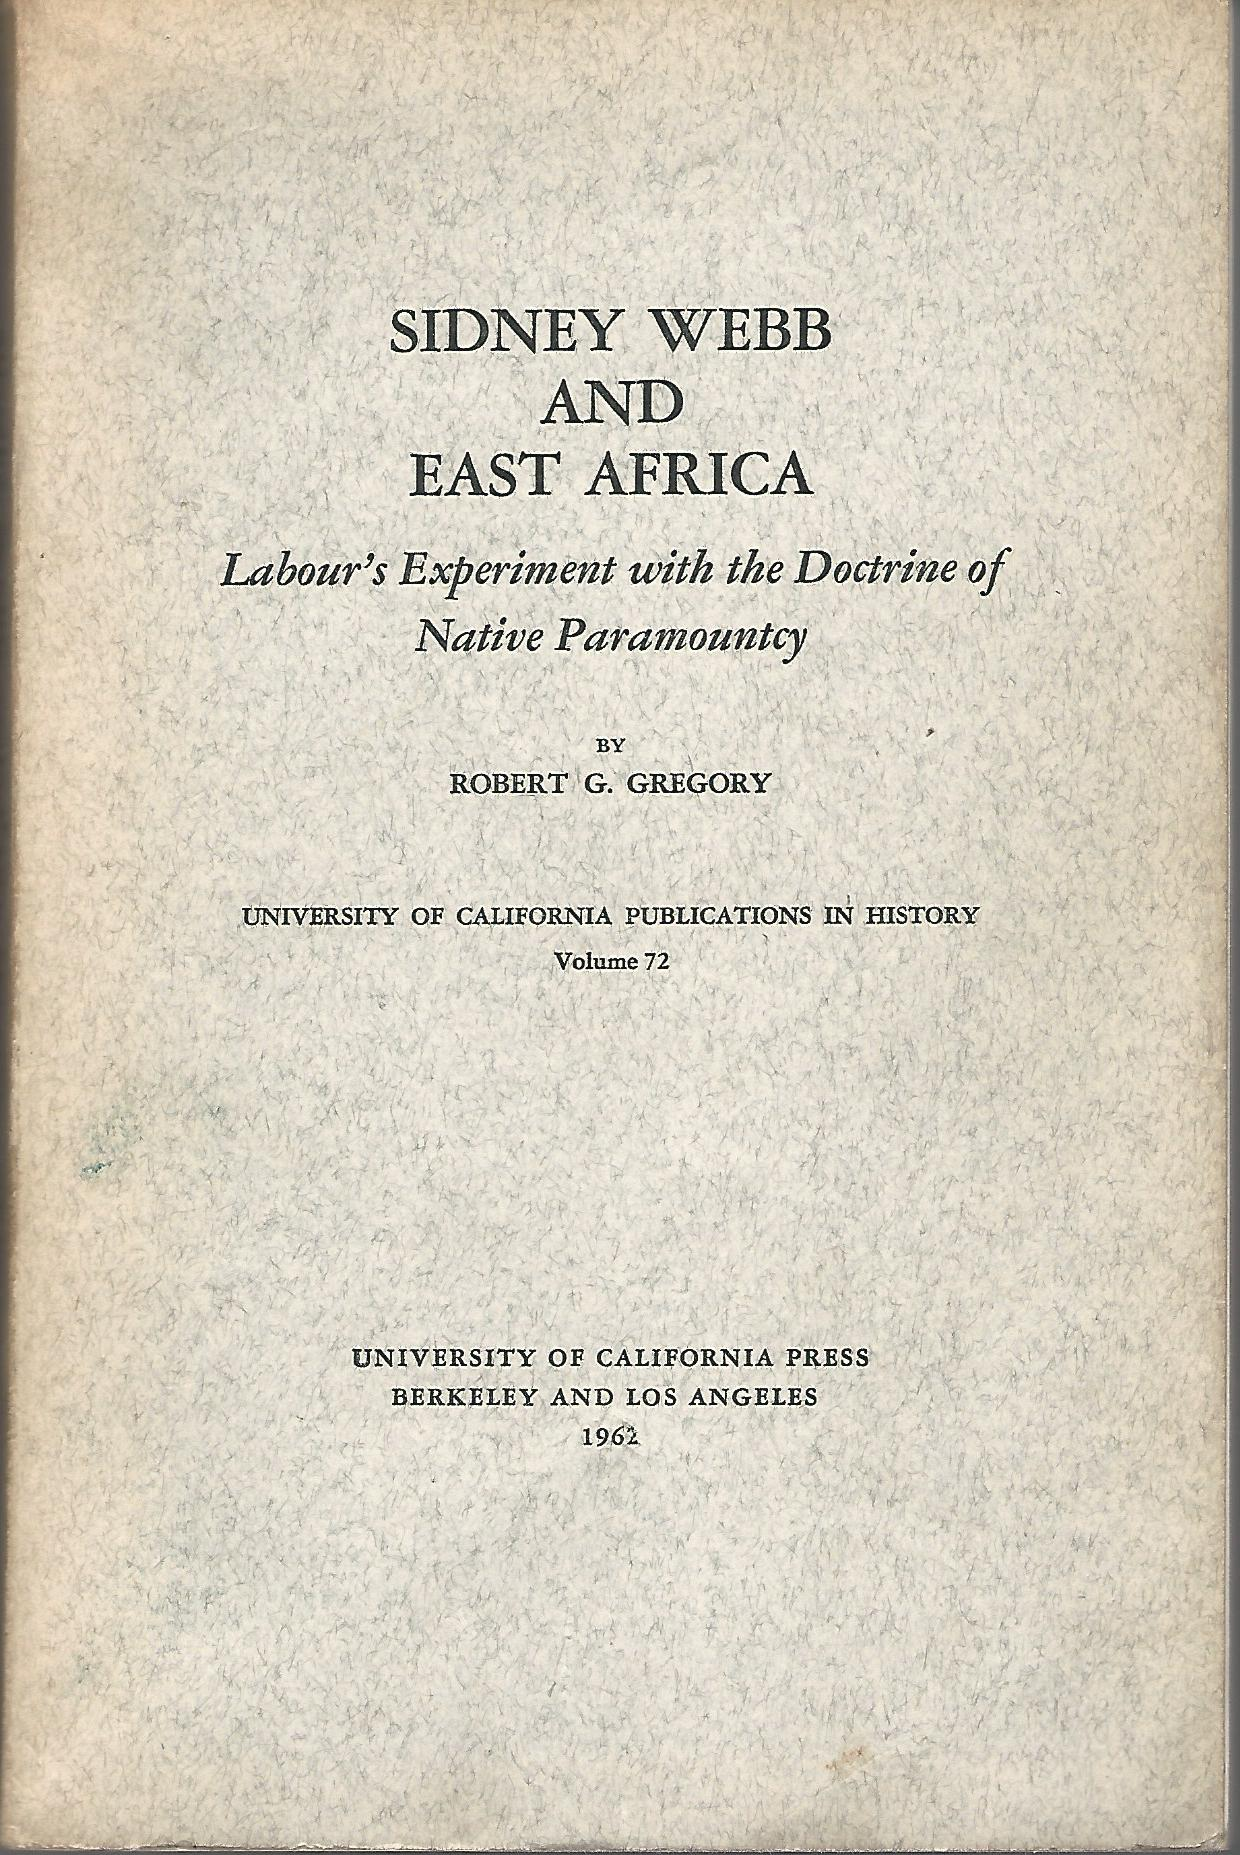 Image for Sidney Webb and East Africa: Labour's Experiment with the Doctrine of Native Paramountcy.